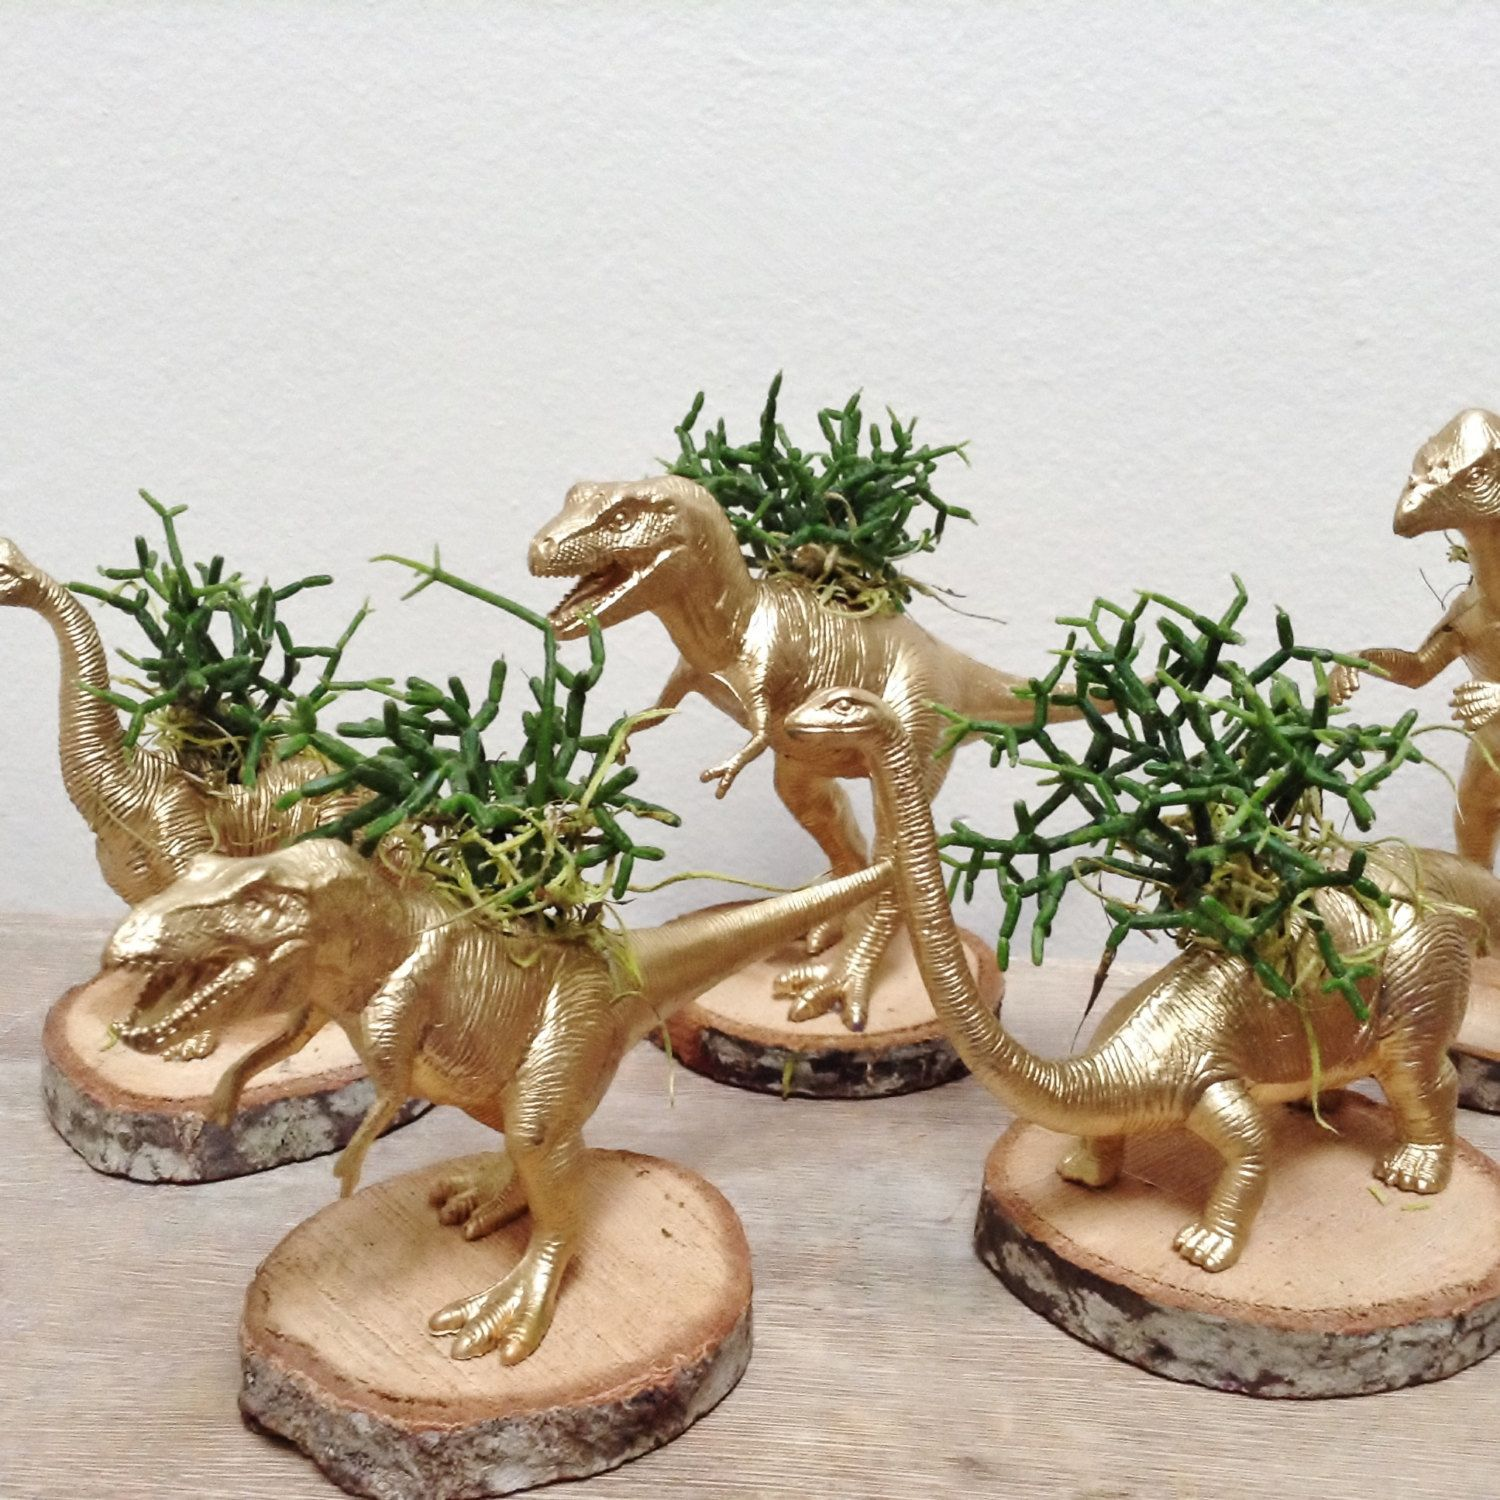 Brooke Ner With Gold Painted Dinosaur Planters She Creates In Her Portland Apartment S